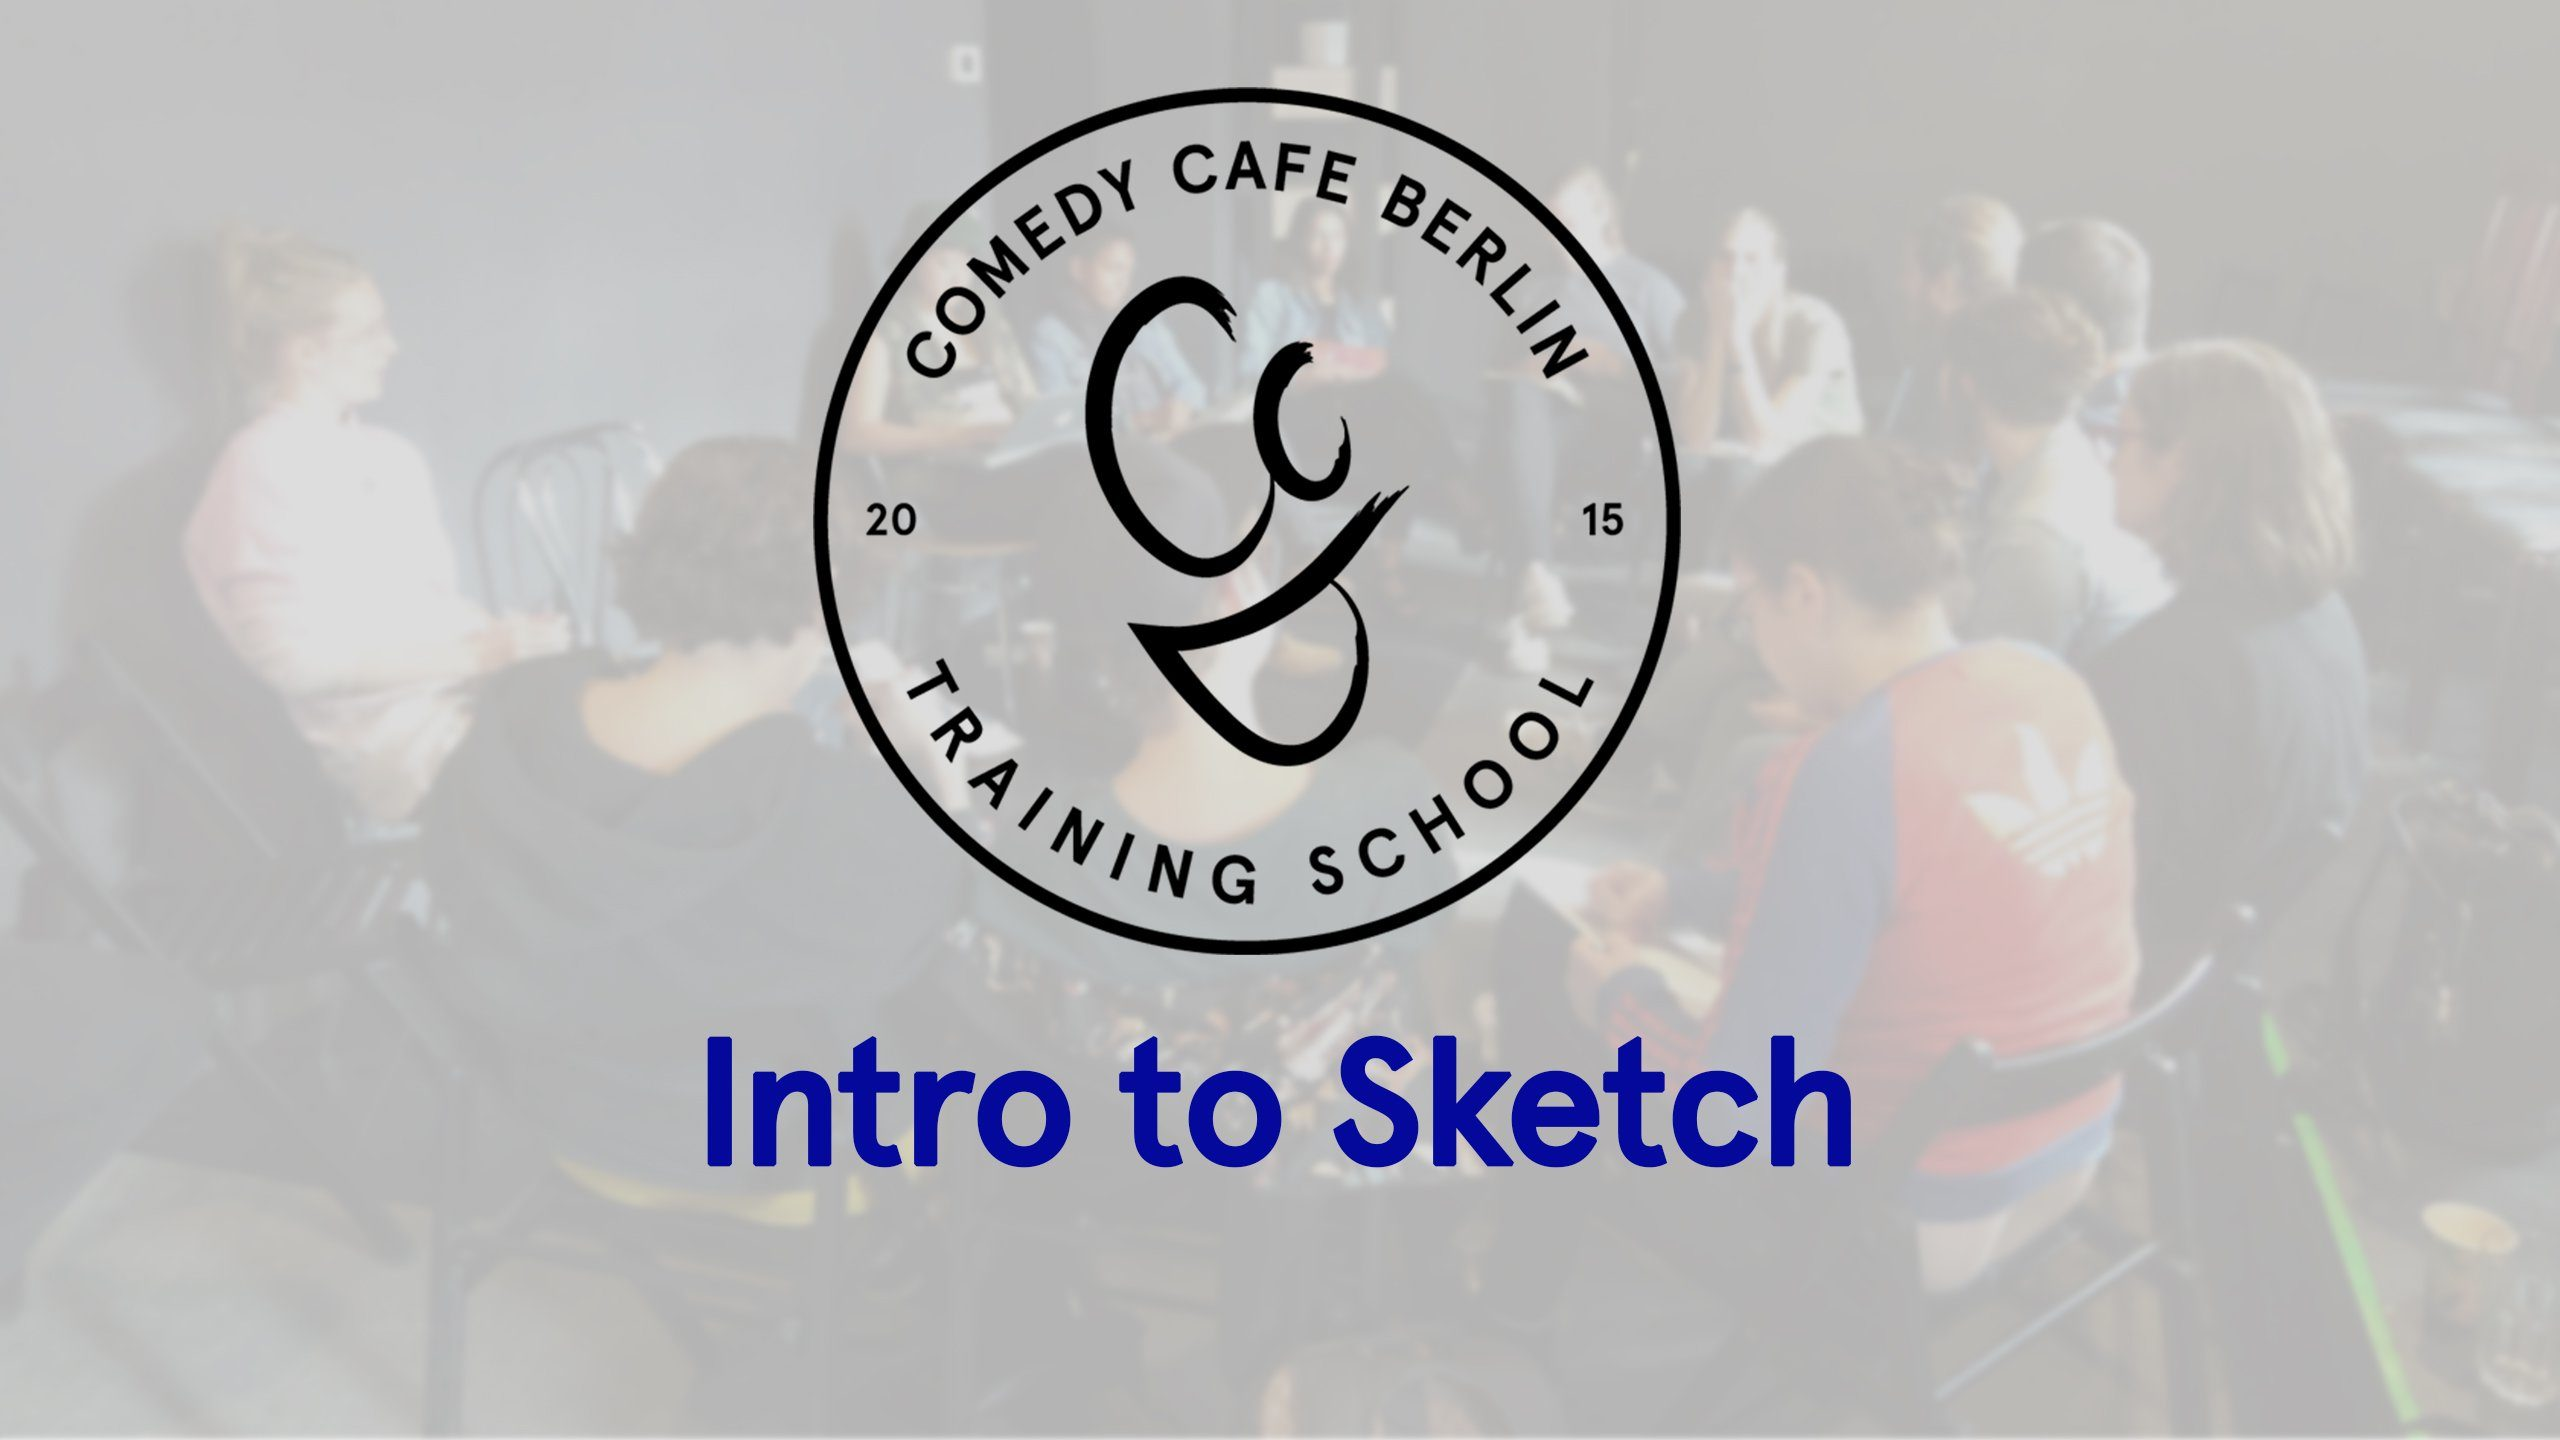 Intro to Sketch